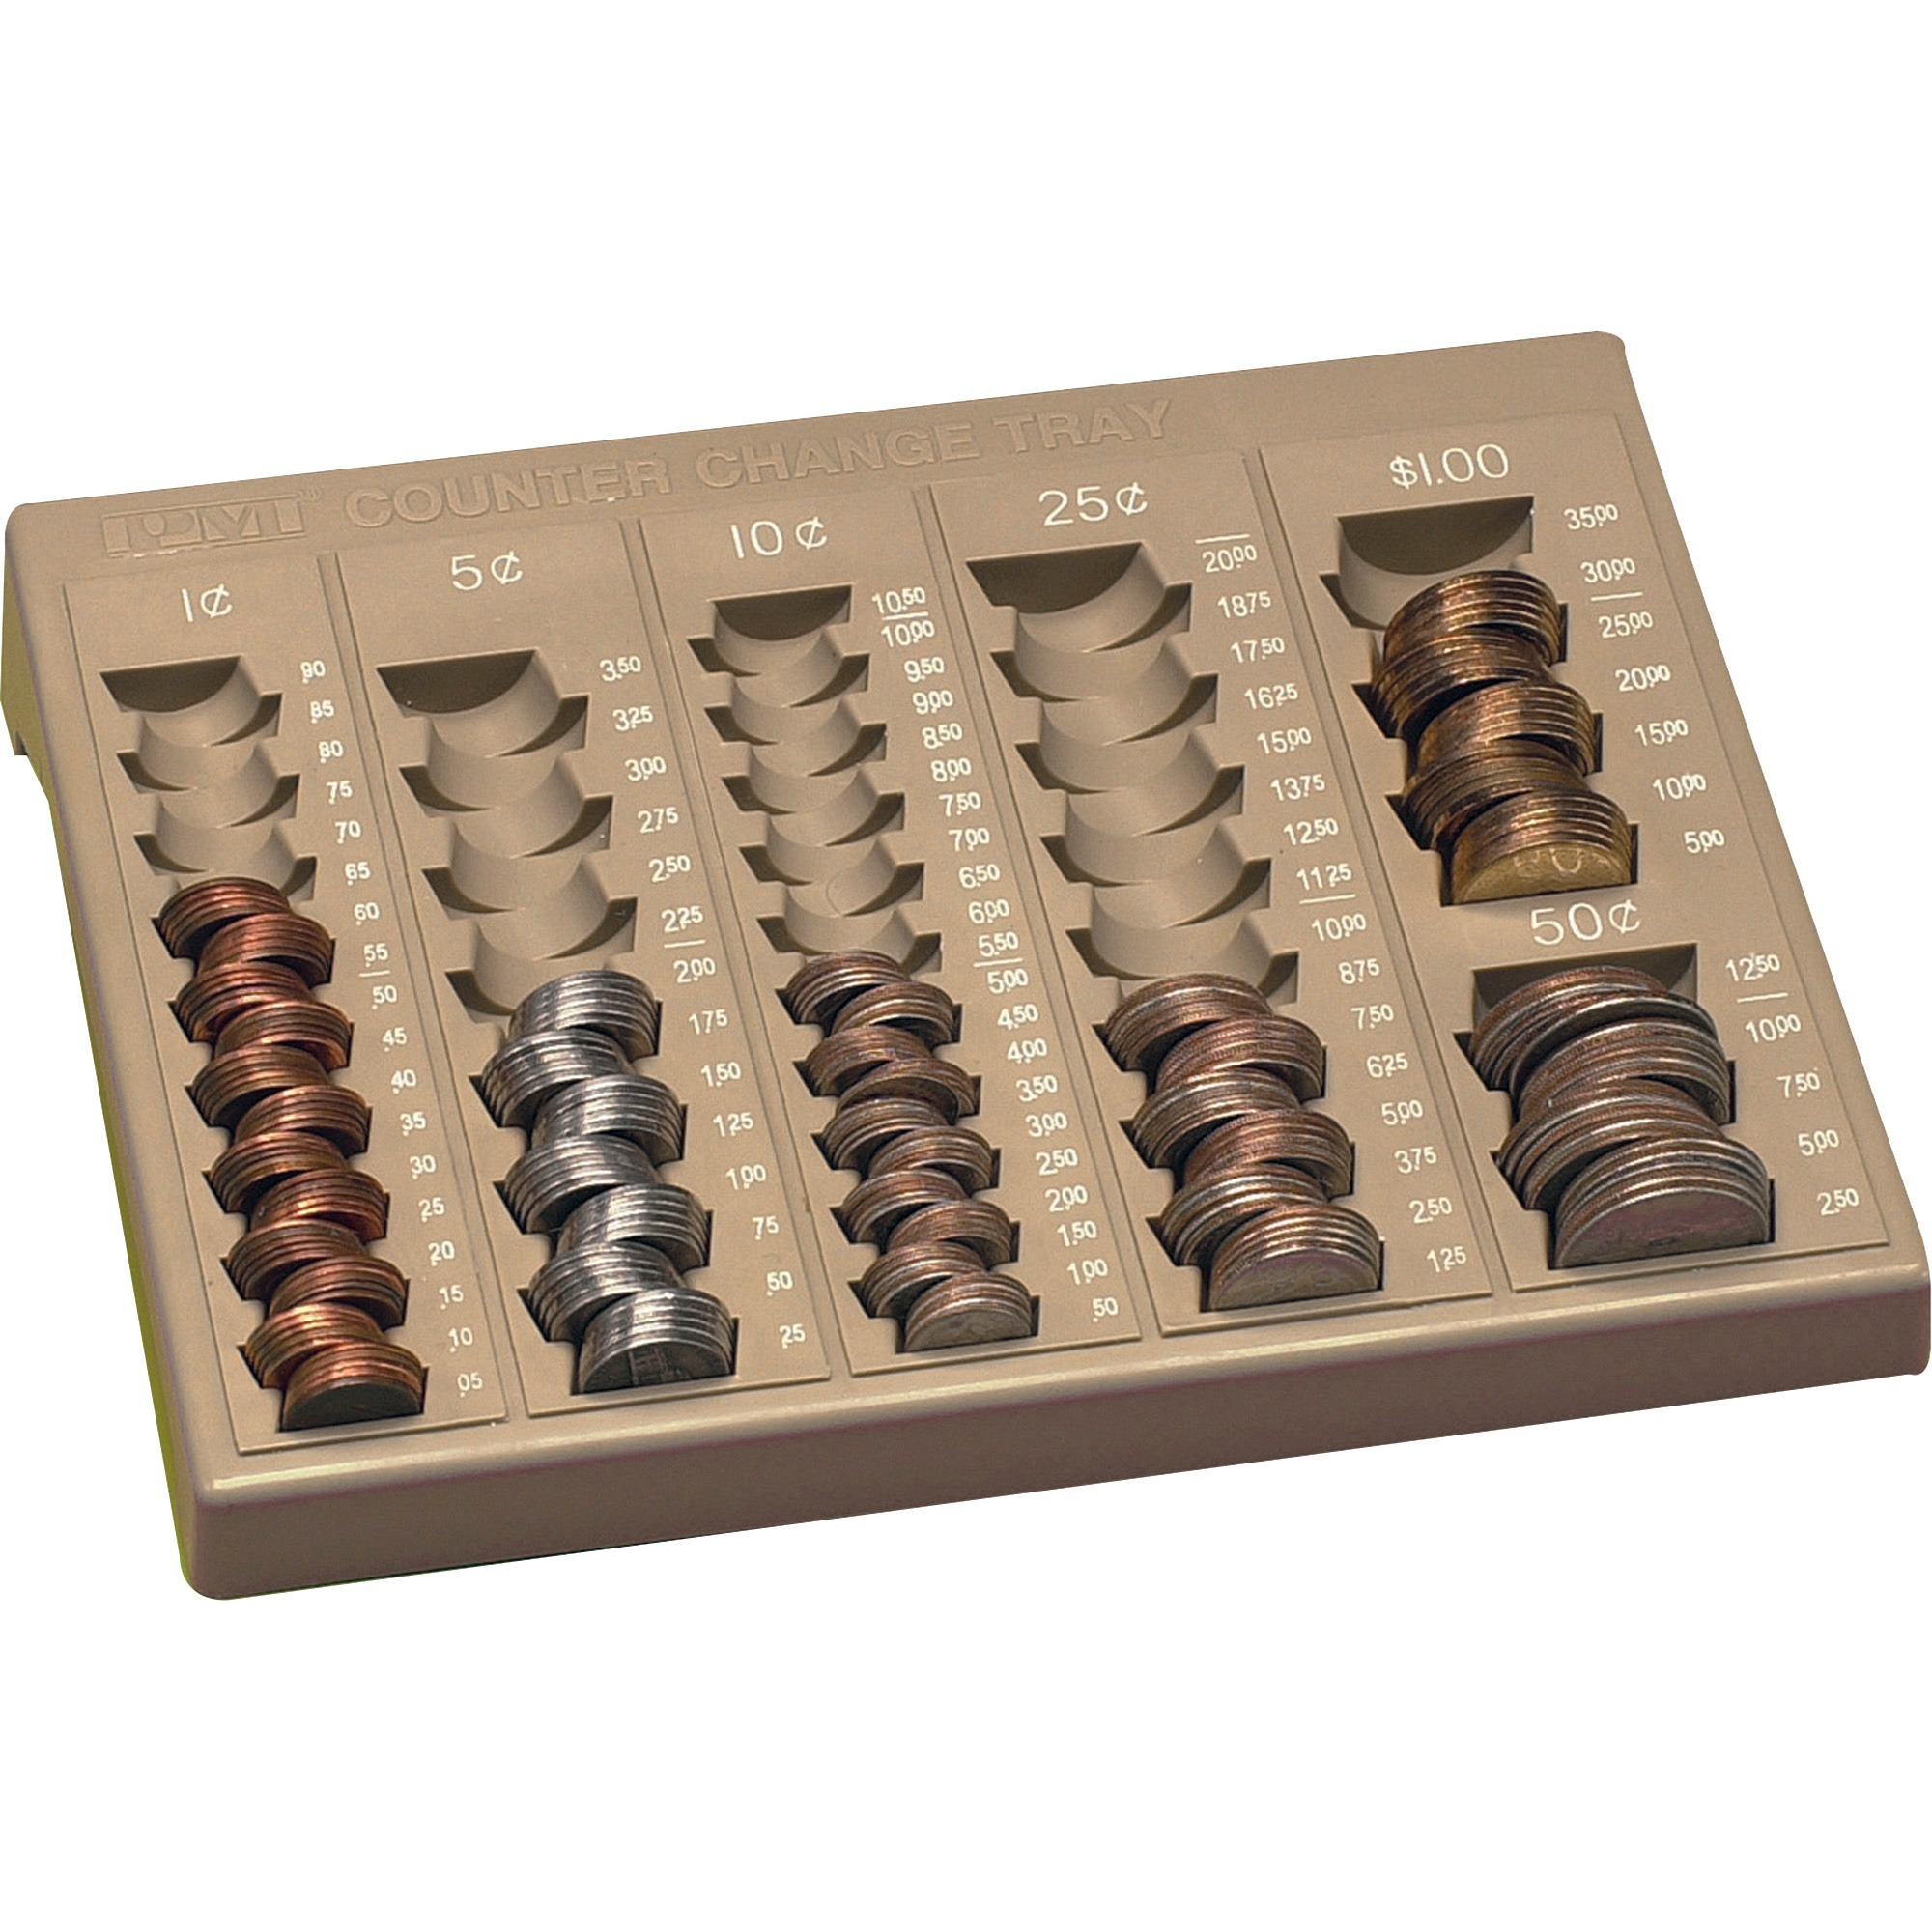 PM SecurIT Counter Change Tray, Beige, 1 (Quantity)